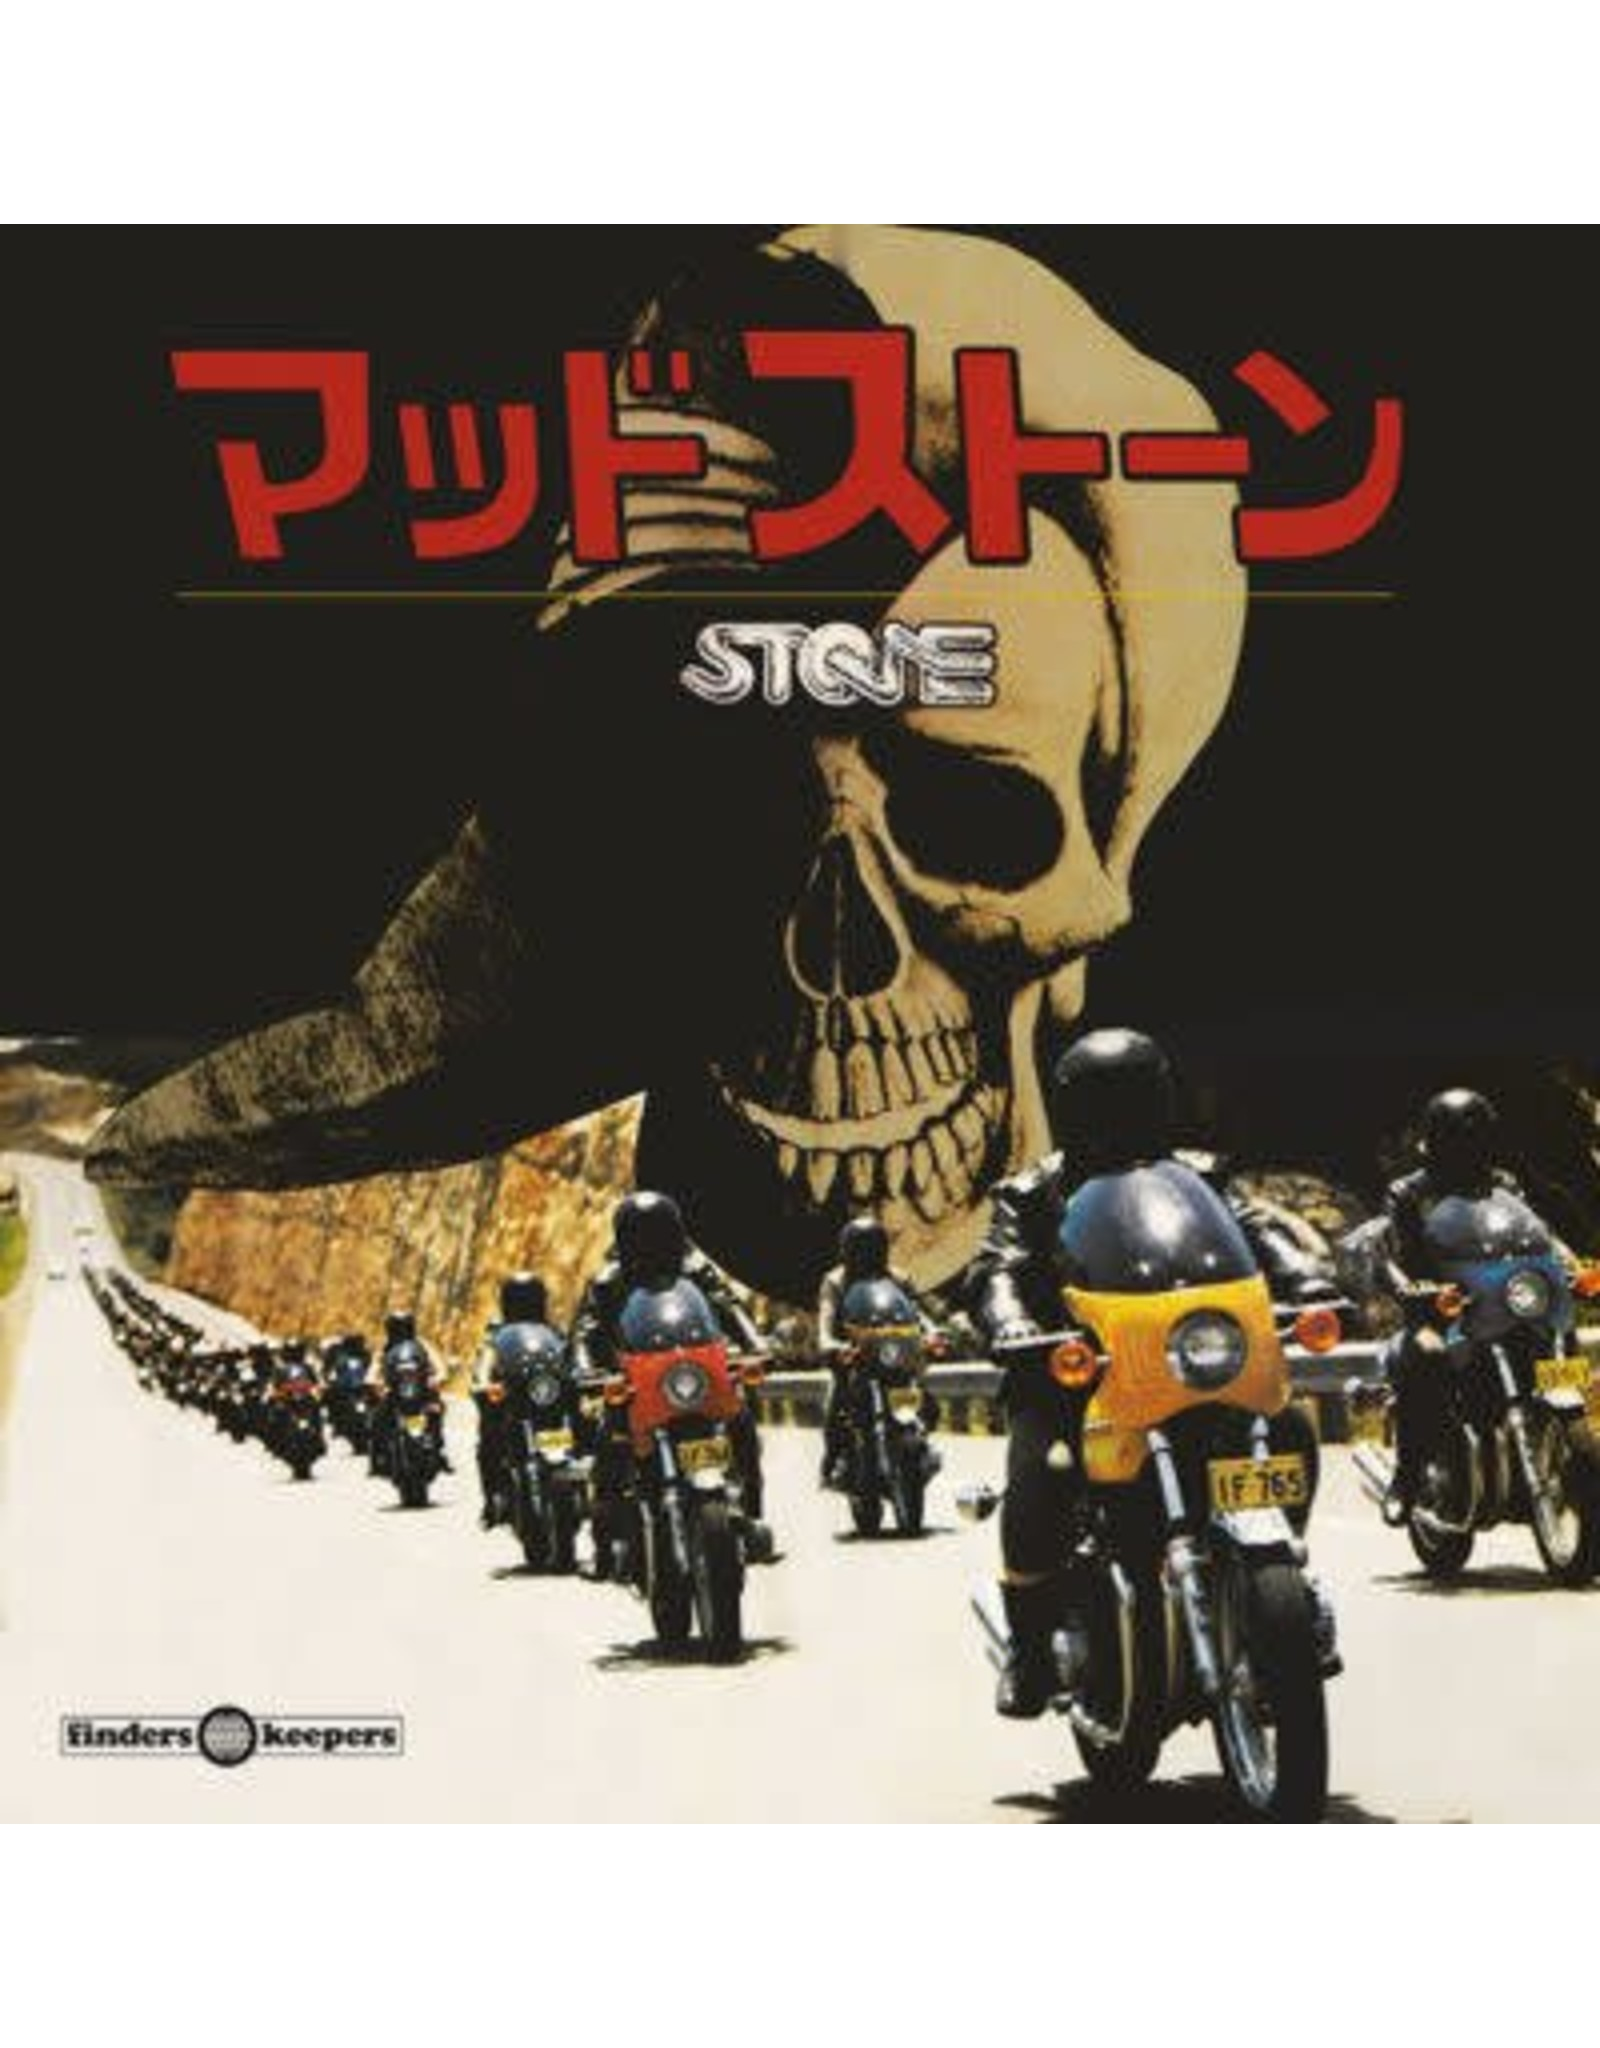 Finders Keepers Green, Billy: Stone OST LP